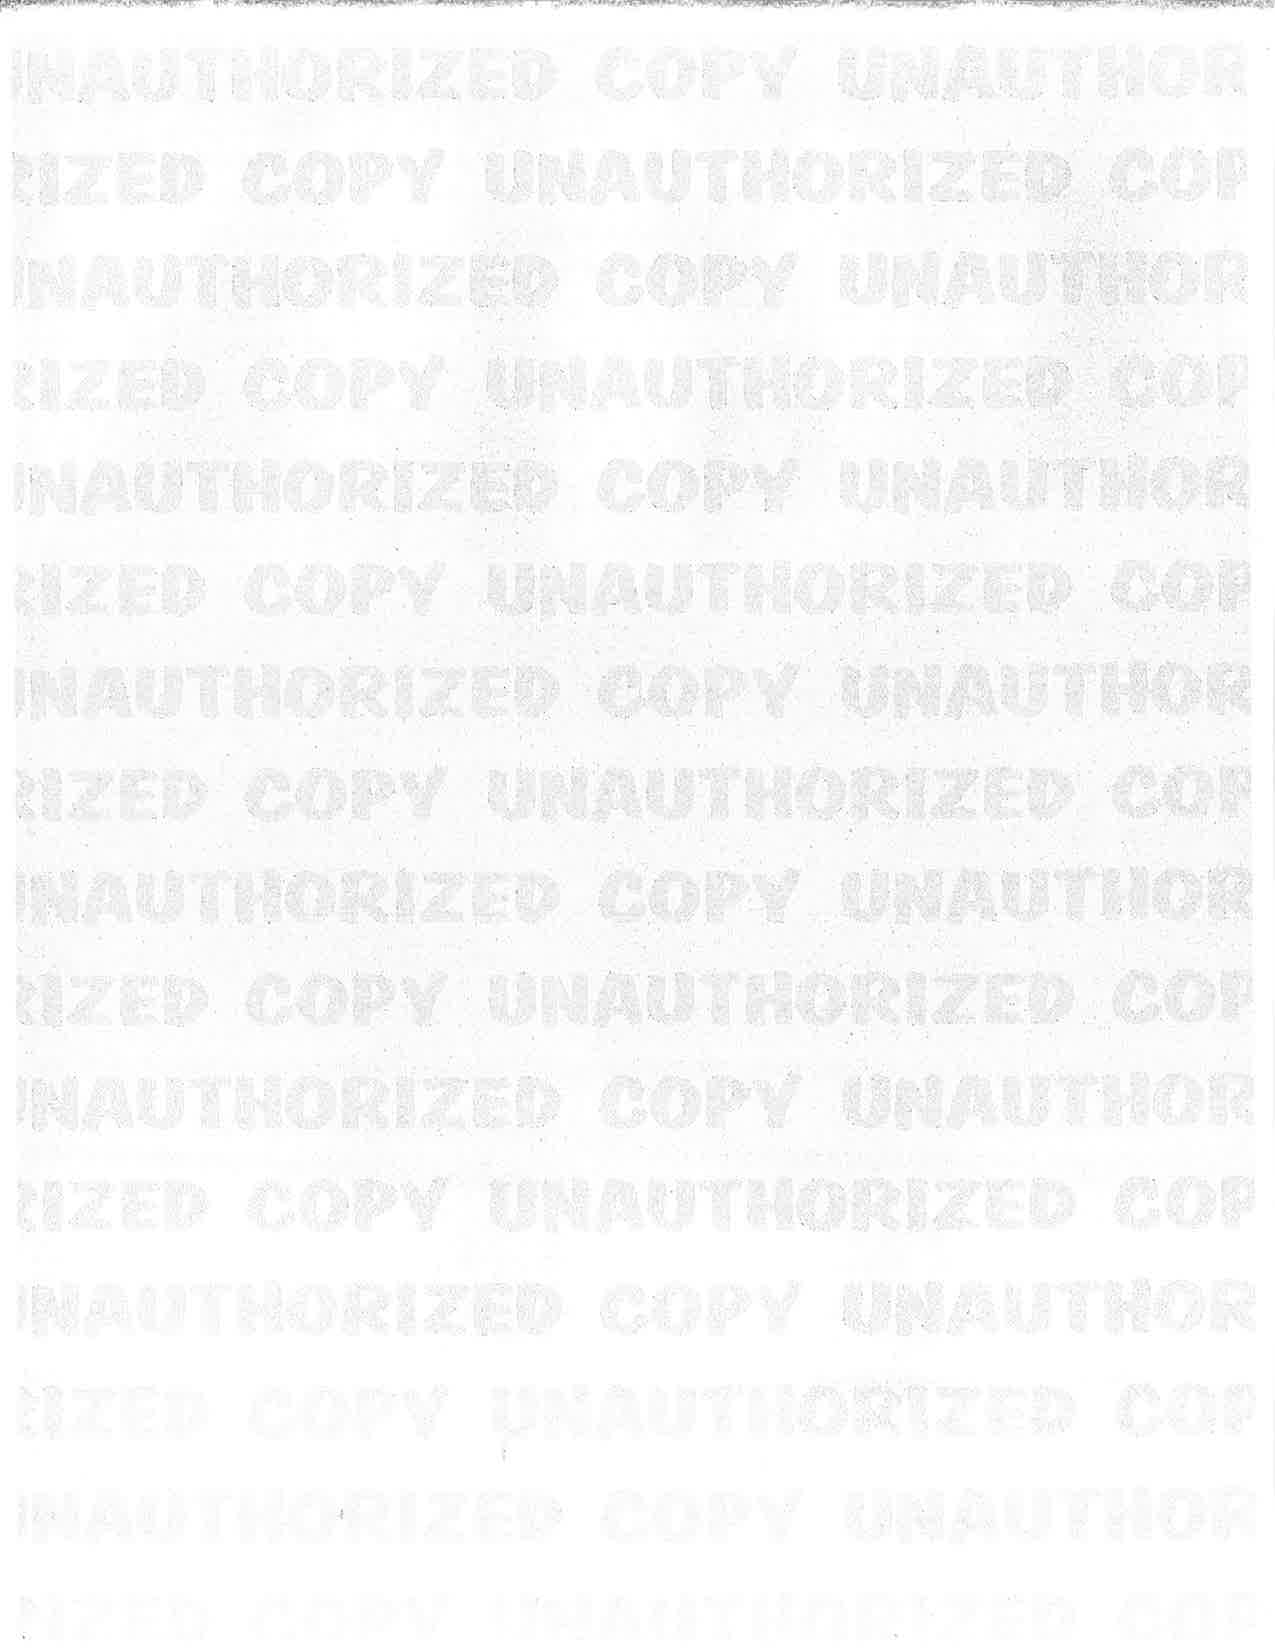 Security Paper Unauthorized Copy